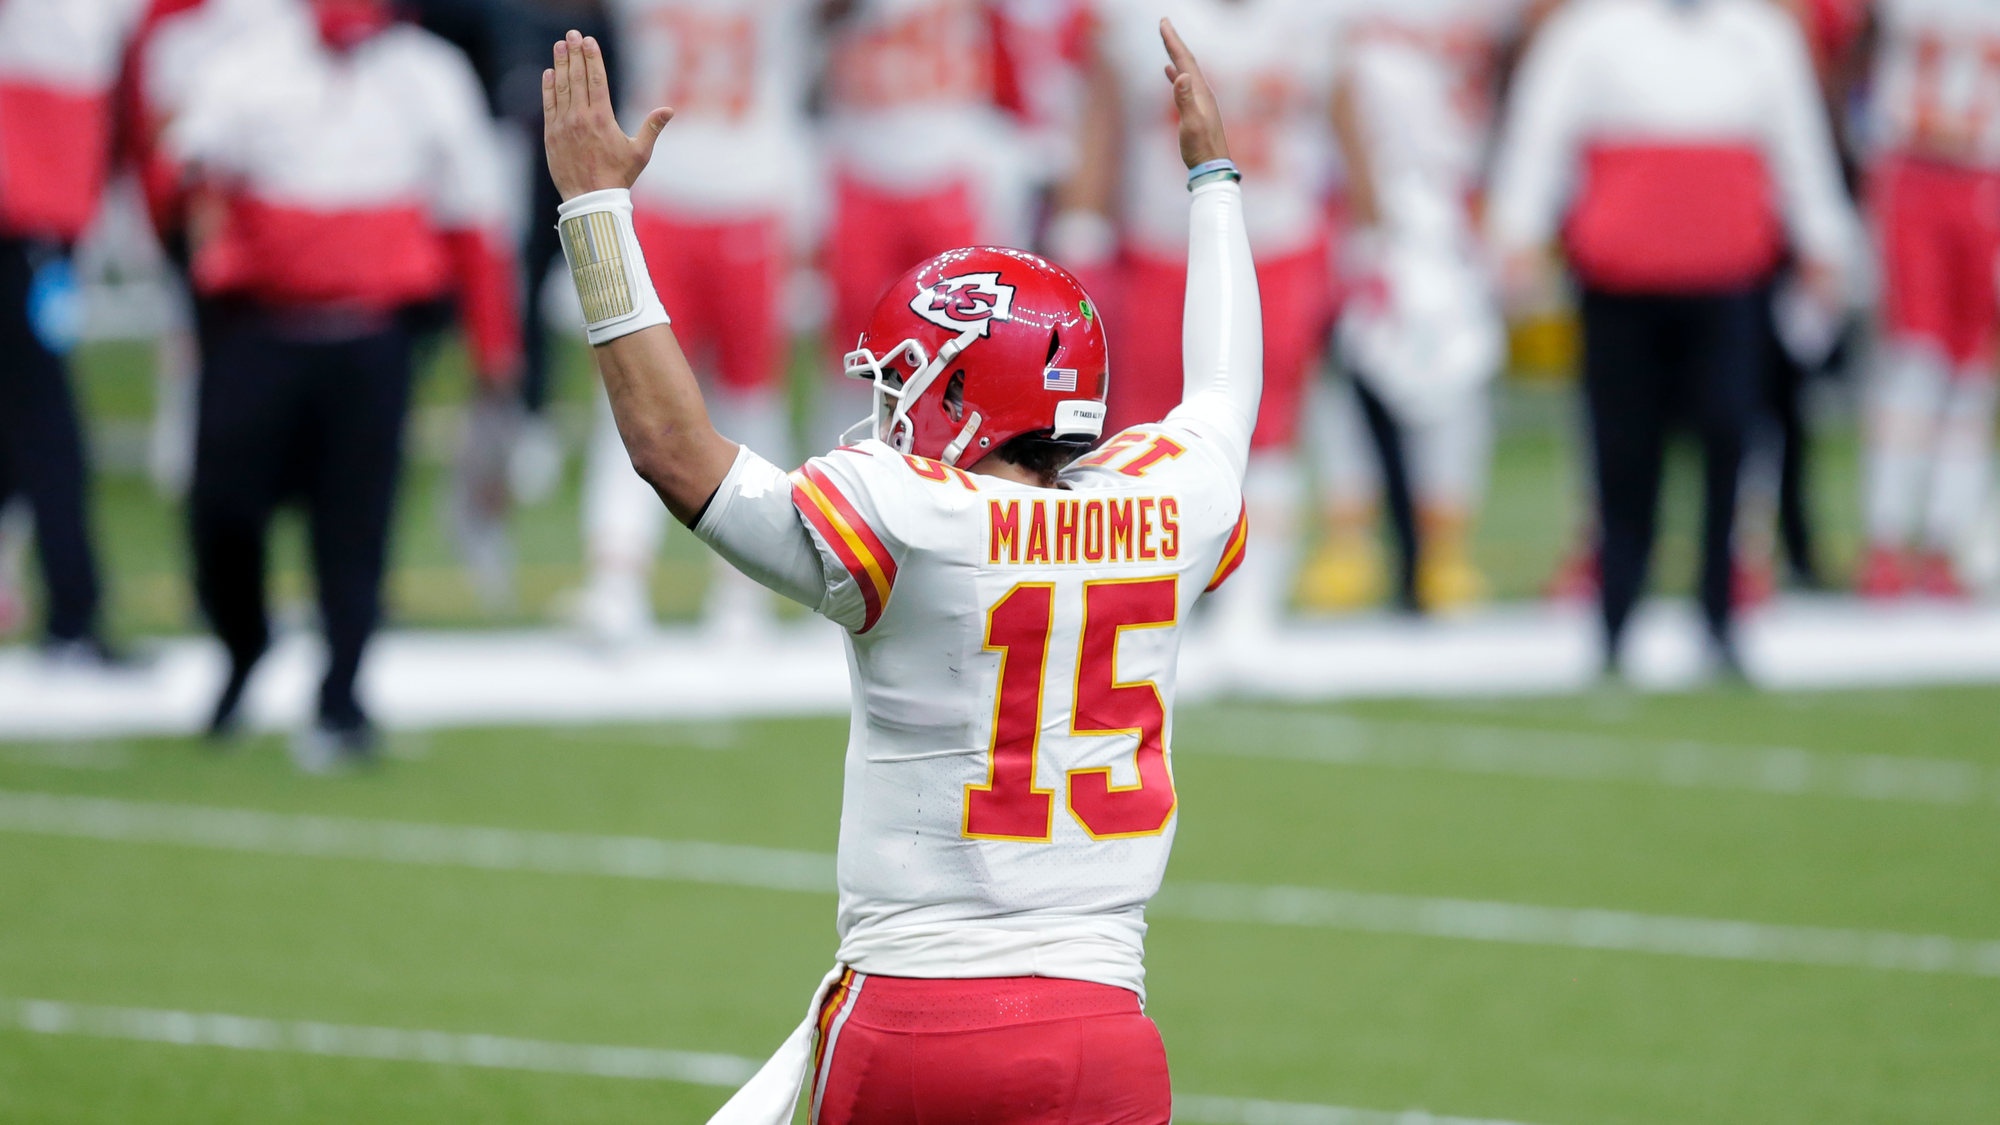 Kansas City Chiefs quarterback Patrick Mahomes (15) reacts after a touchdown by running back Le'Veon Bell in the second half of an NFL football game against the New Orleans Saints in New Orleans, Sunday, Dec. 20, 2020. (AP Photo/Brett Duke)